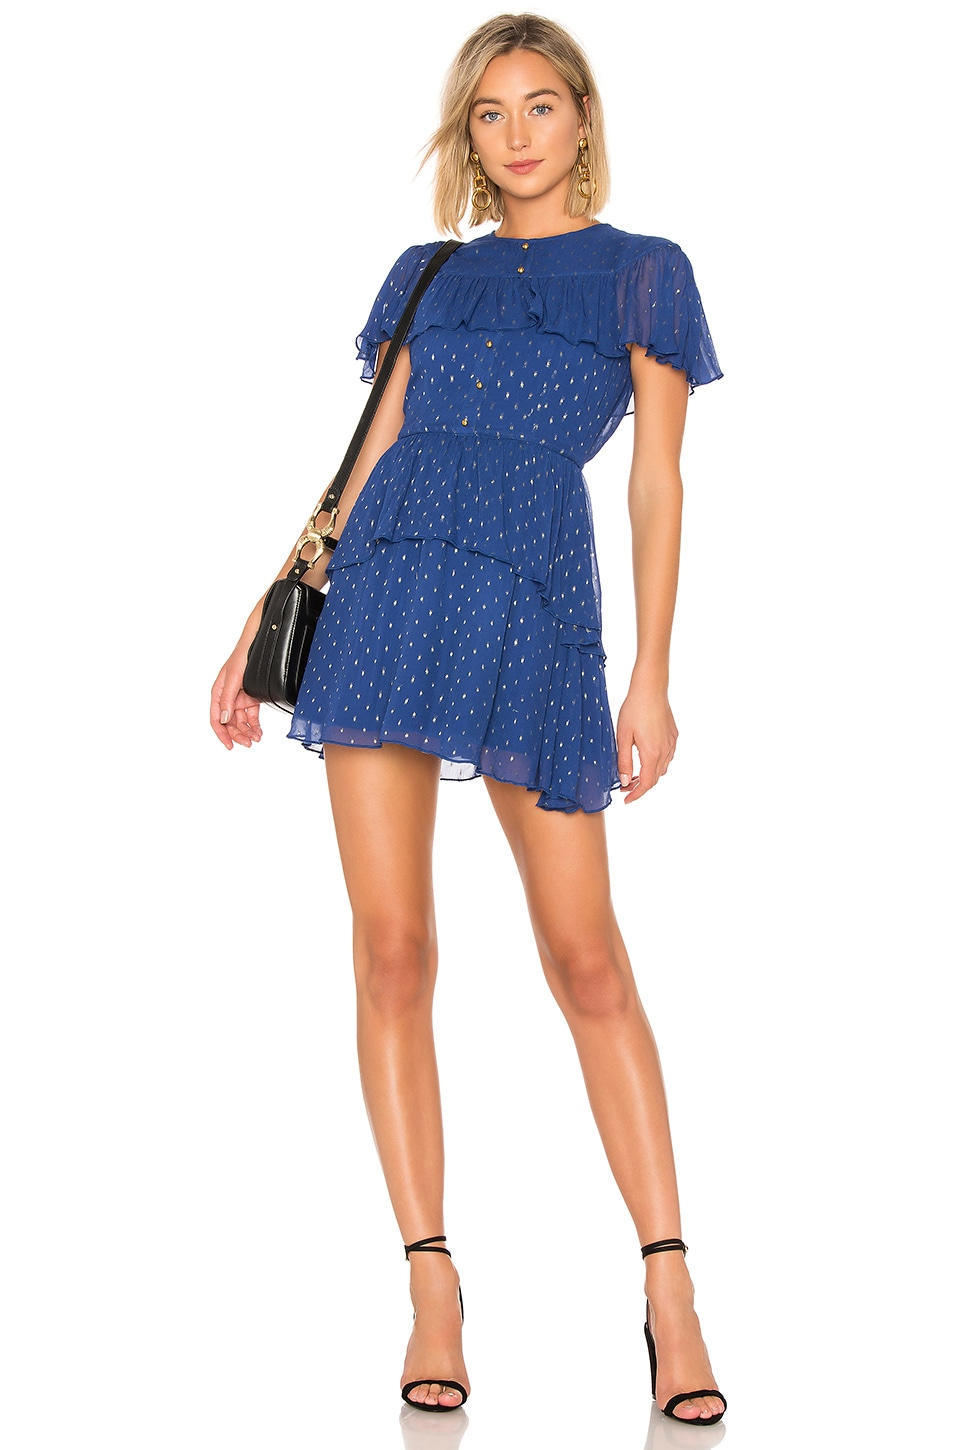 House of Harlow 1960 ROBE COURTE CLINT